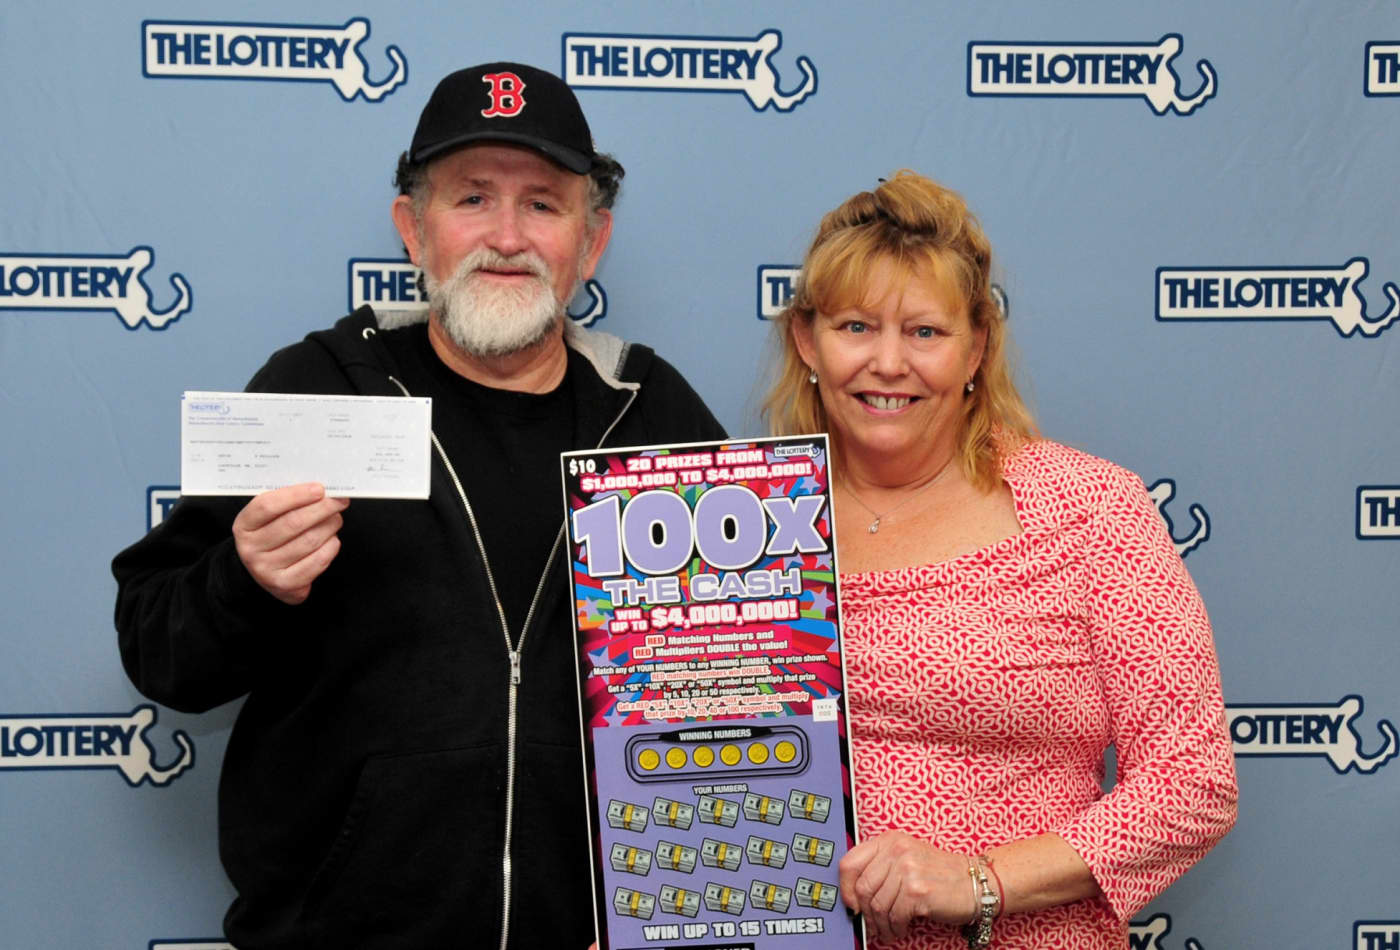 Massachusetts husband and wife both won million-dollar lotteries